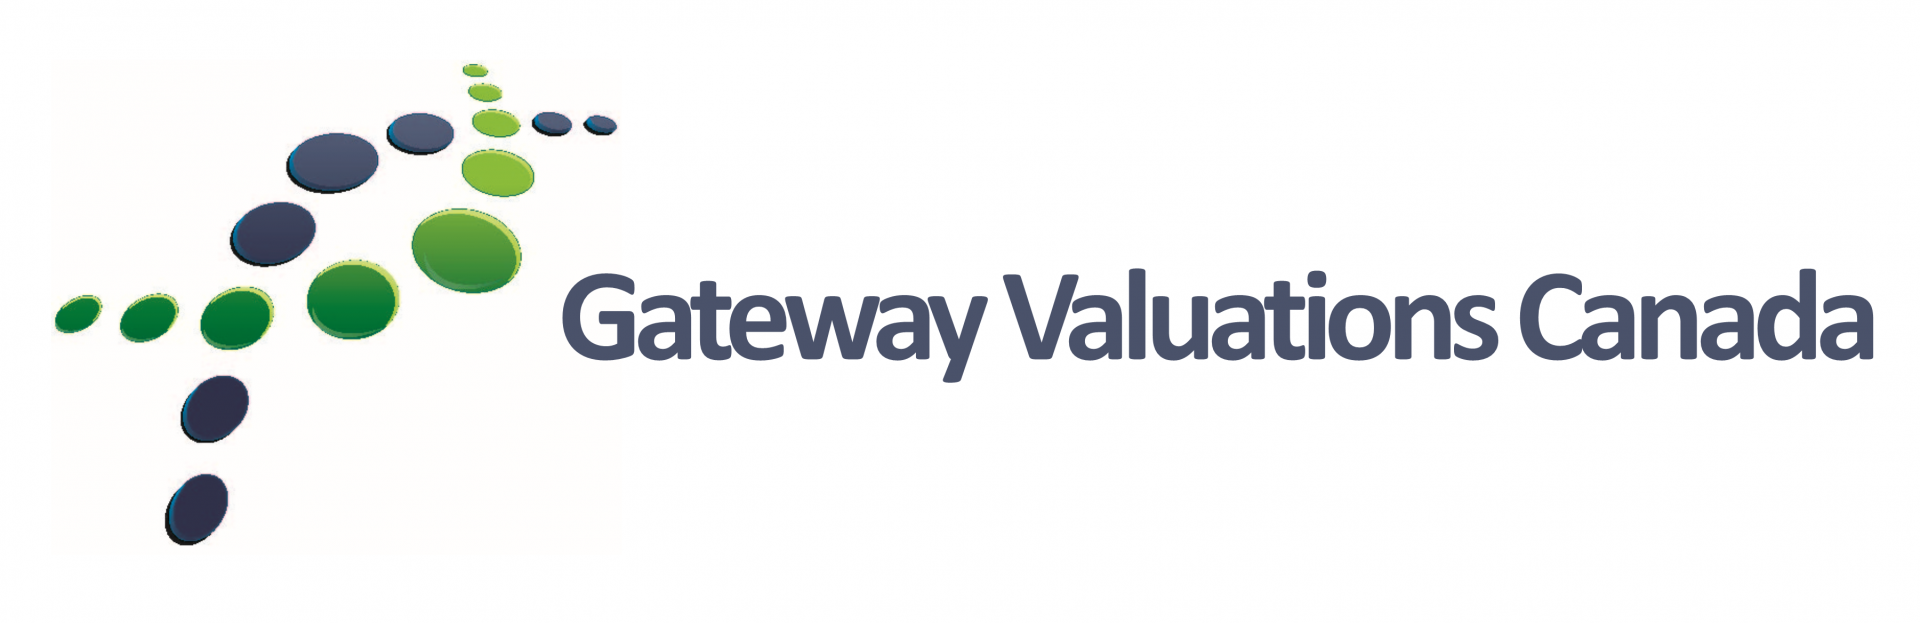 GATEWAY VALUATIONS CANADA